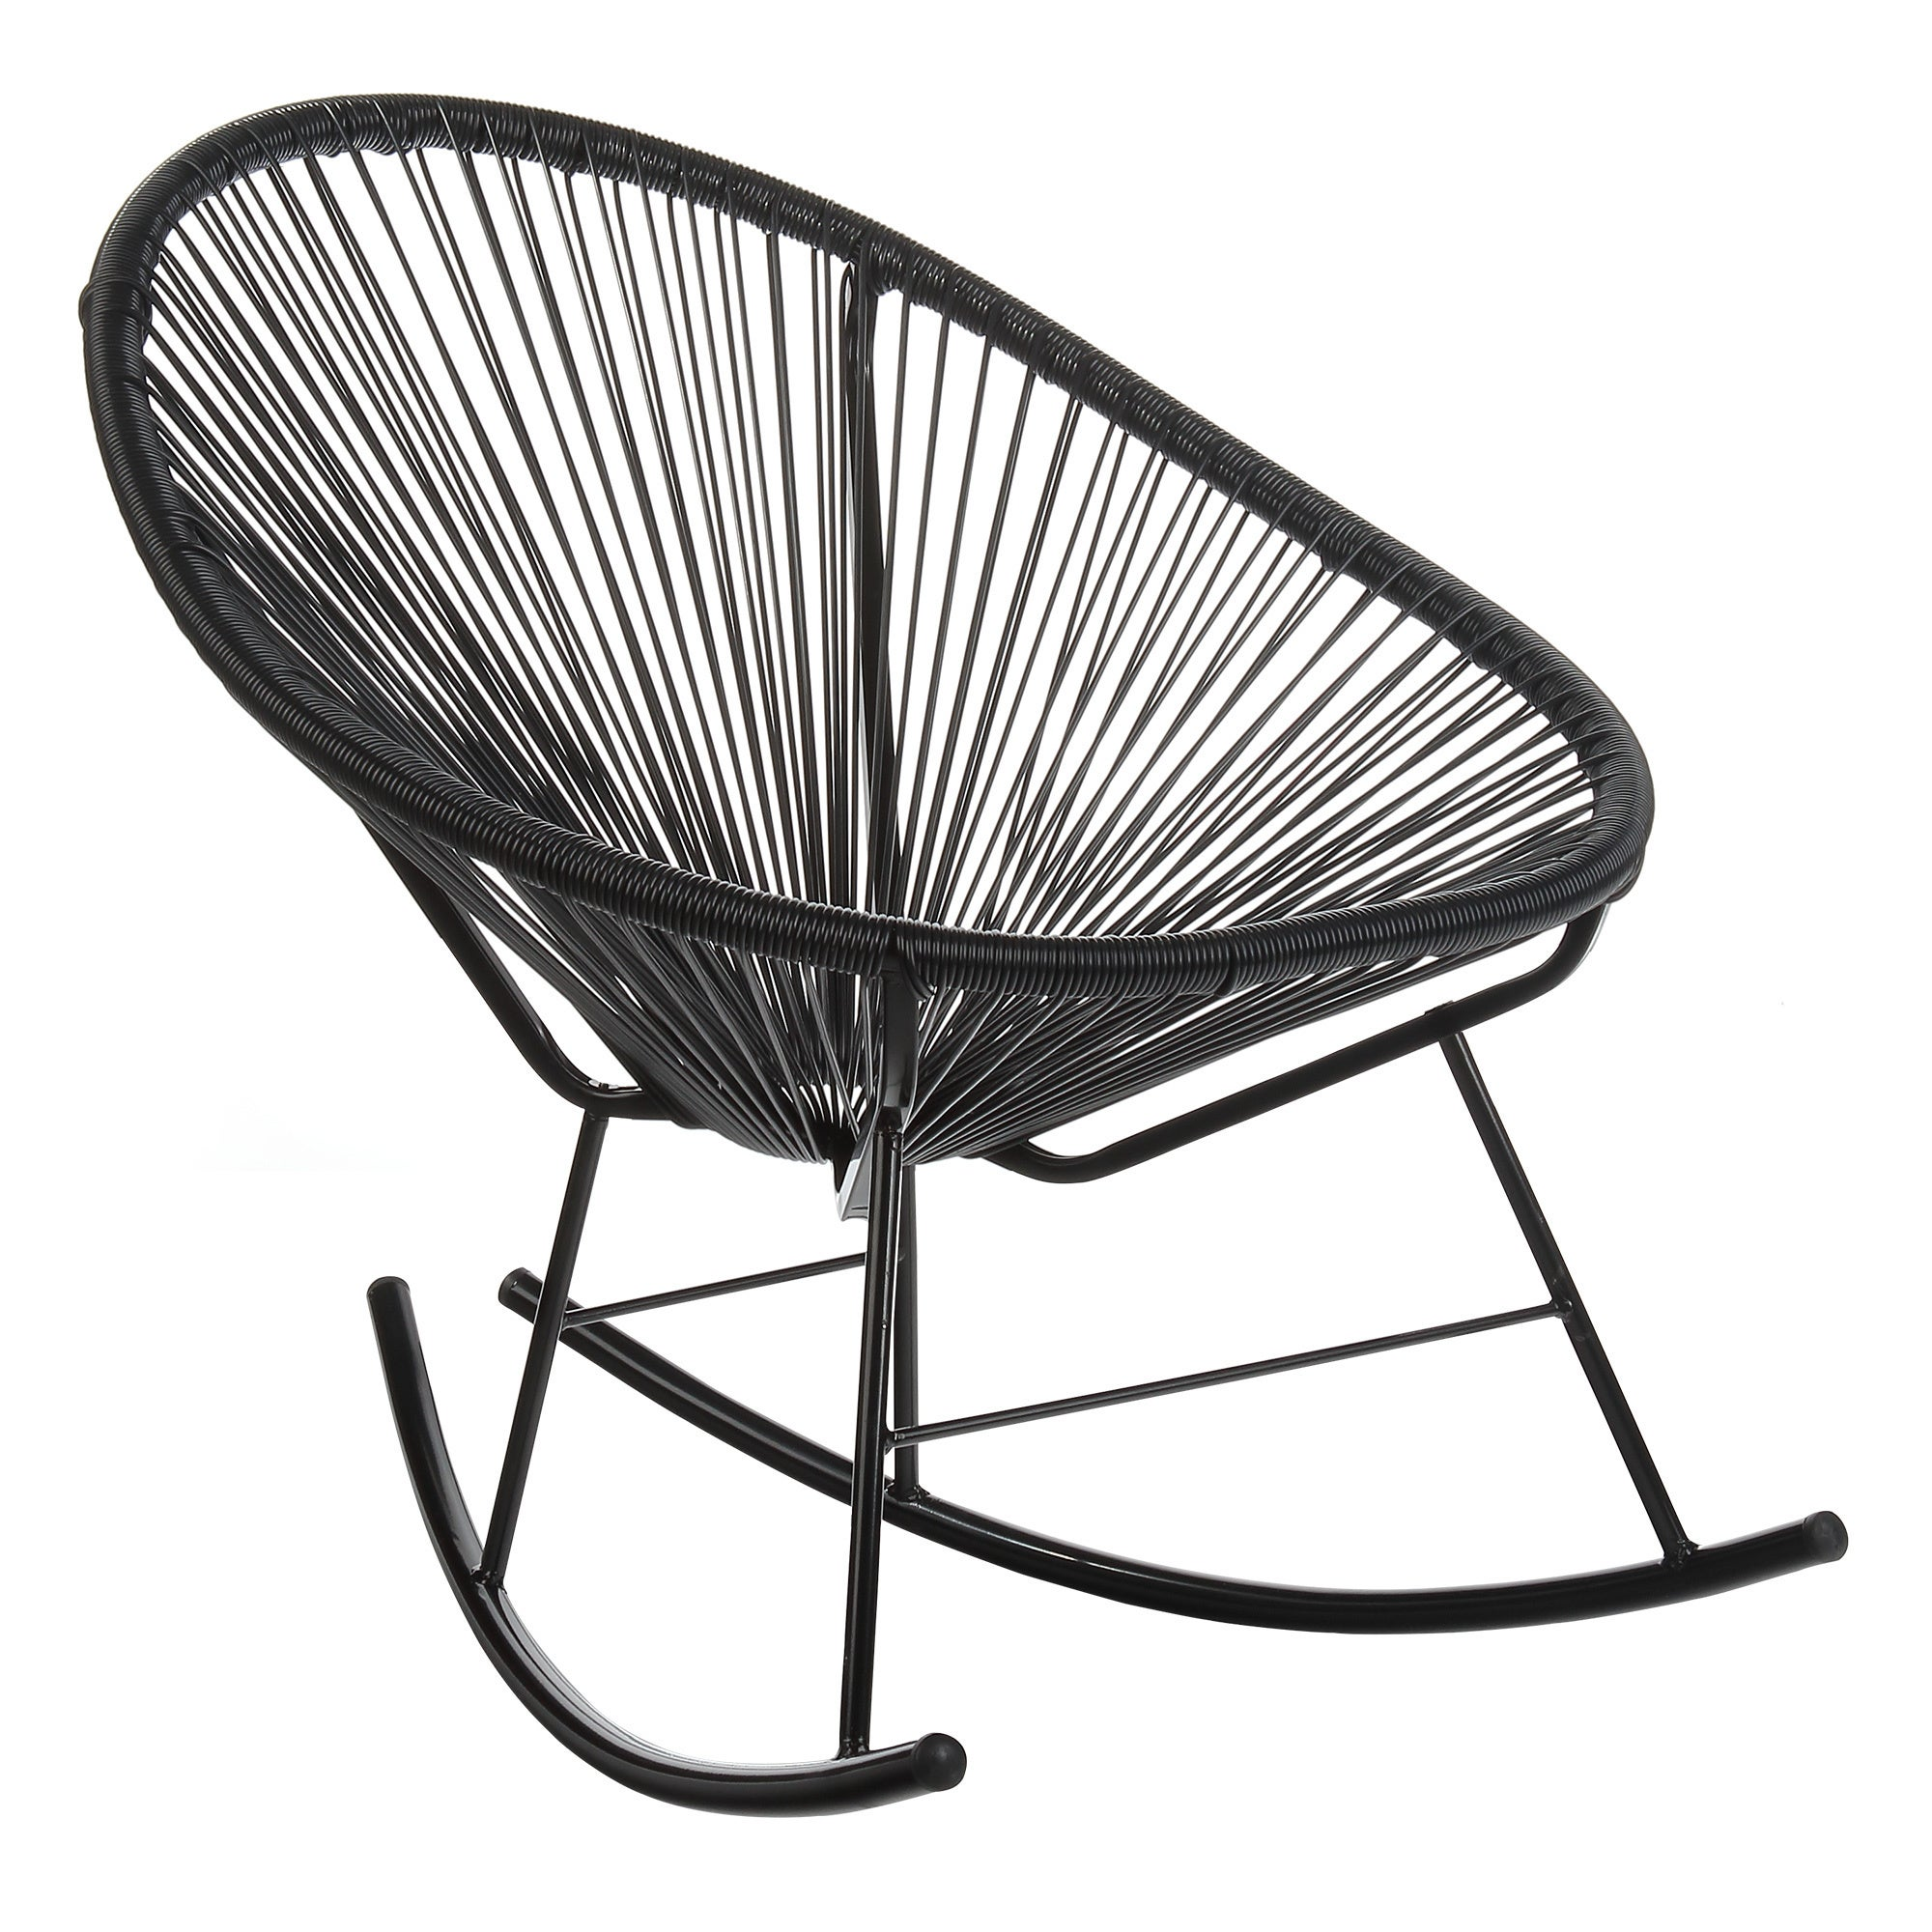 Shop Handmade Acapulco Papasan Rocking Chair, Indoor Or Outdoor, Black  (China)   Free Shipping Today   Overstock.com   19486660